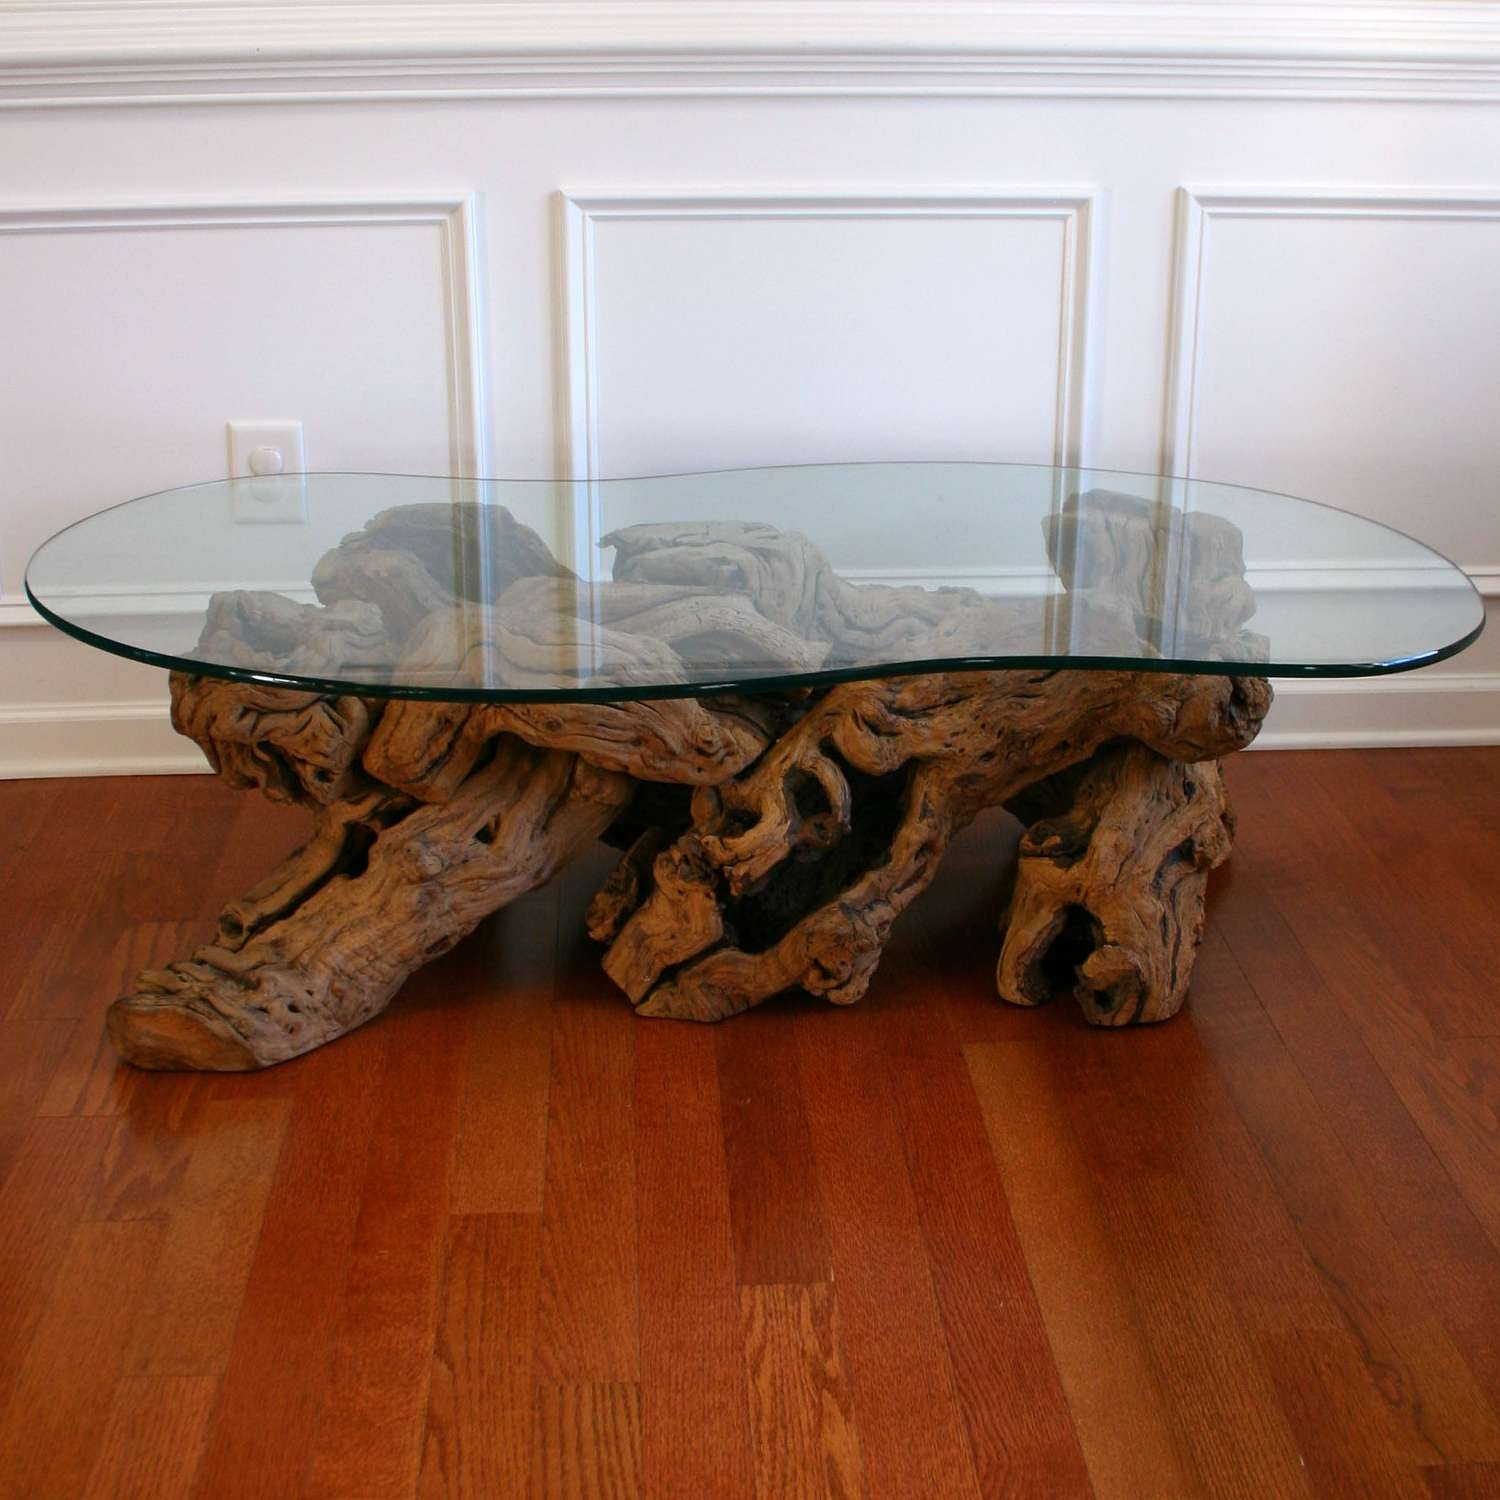 Old Crate And Barrel Driftwood Coffee Table With Glass Top For Inside Most Recently Released White Wood And Glass Coffee Tables (View 11 of 20)